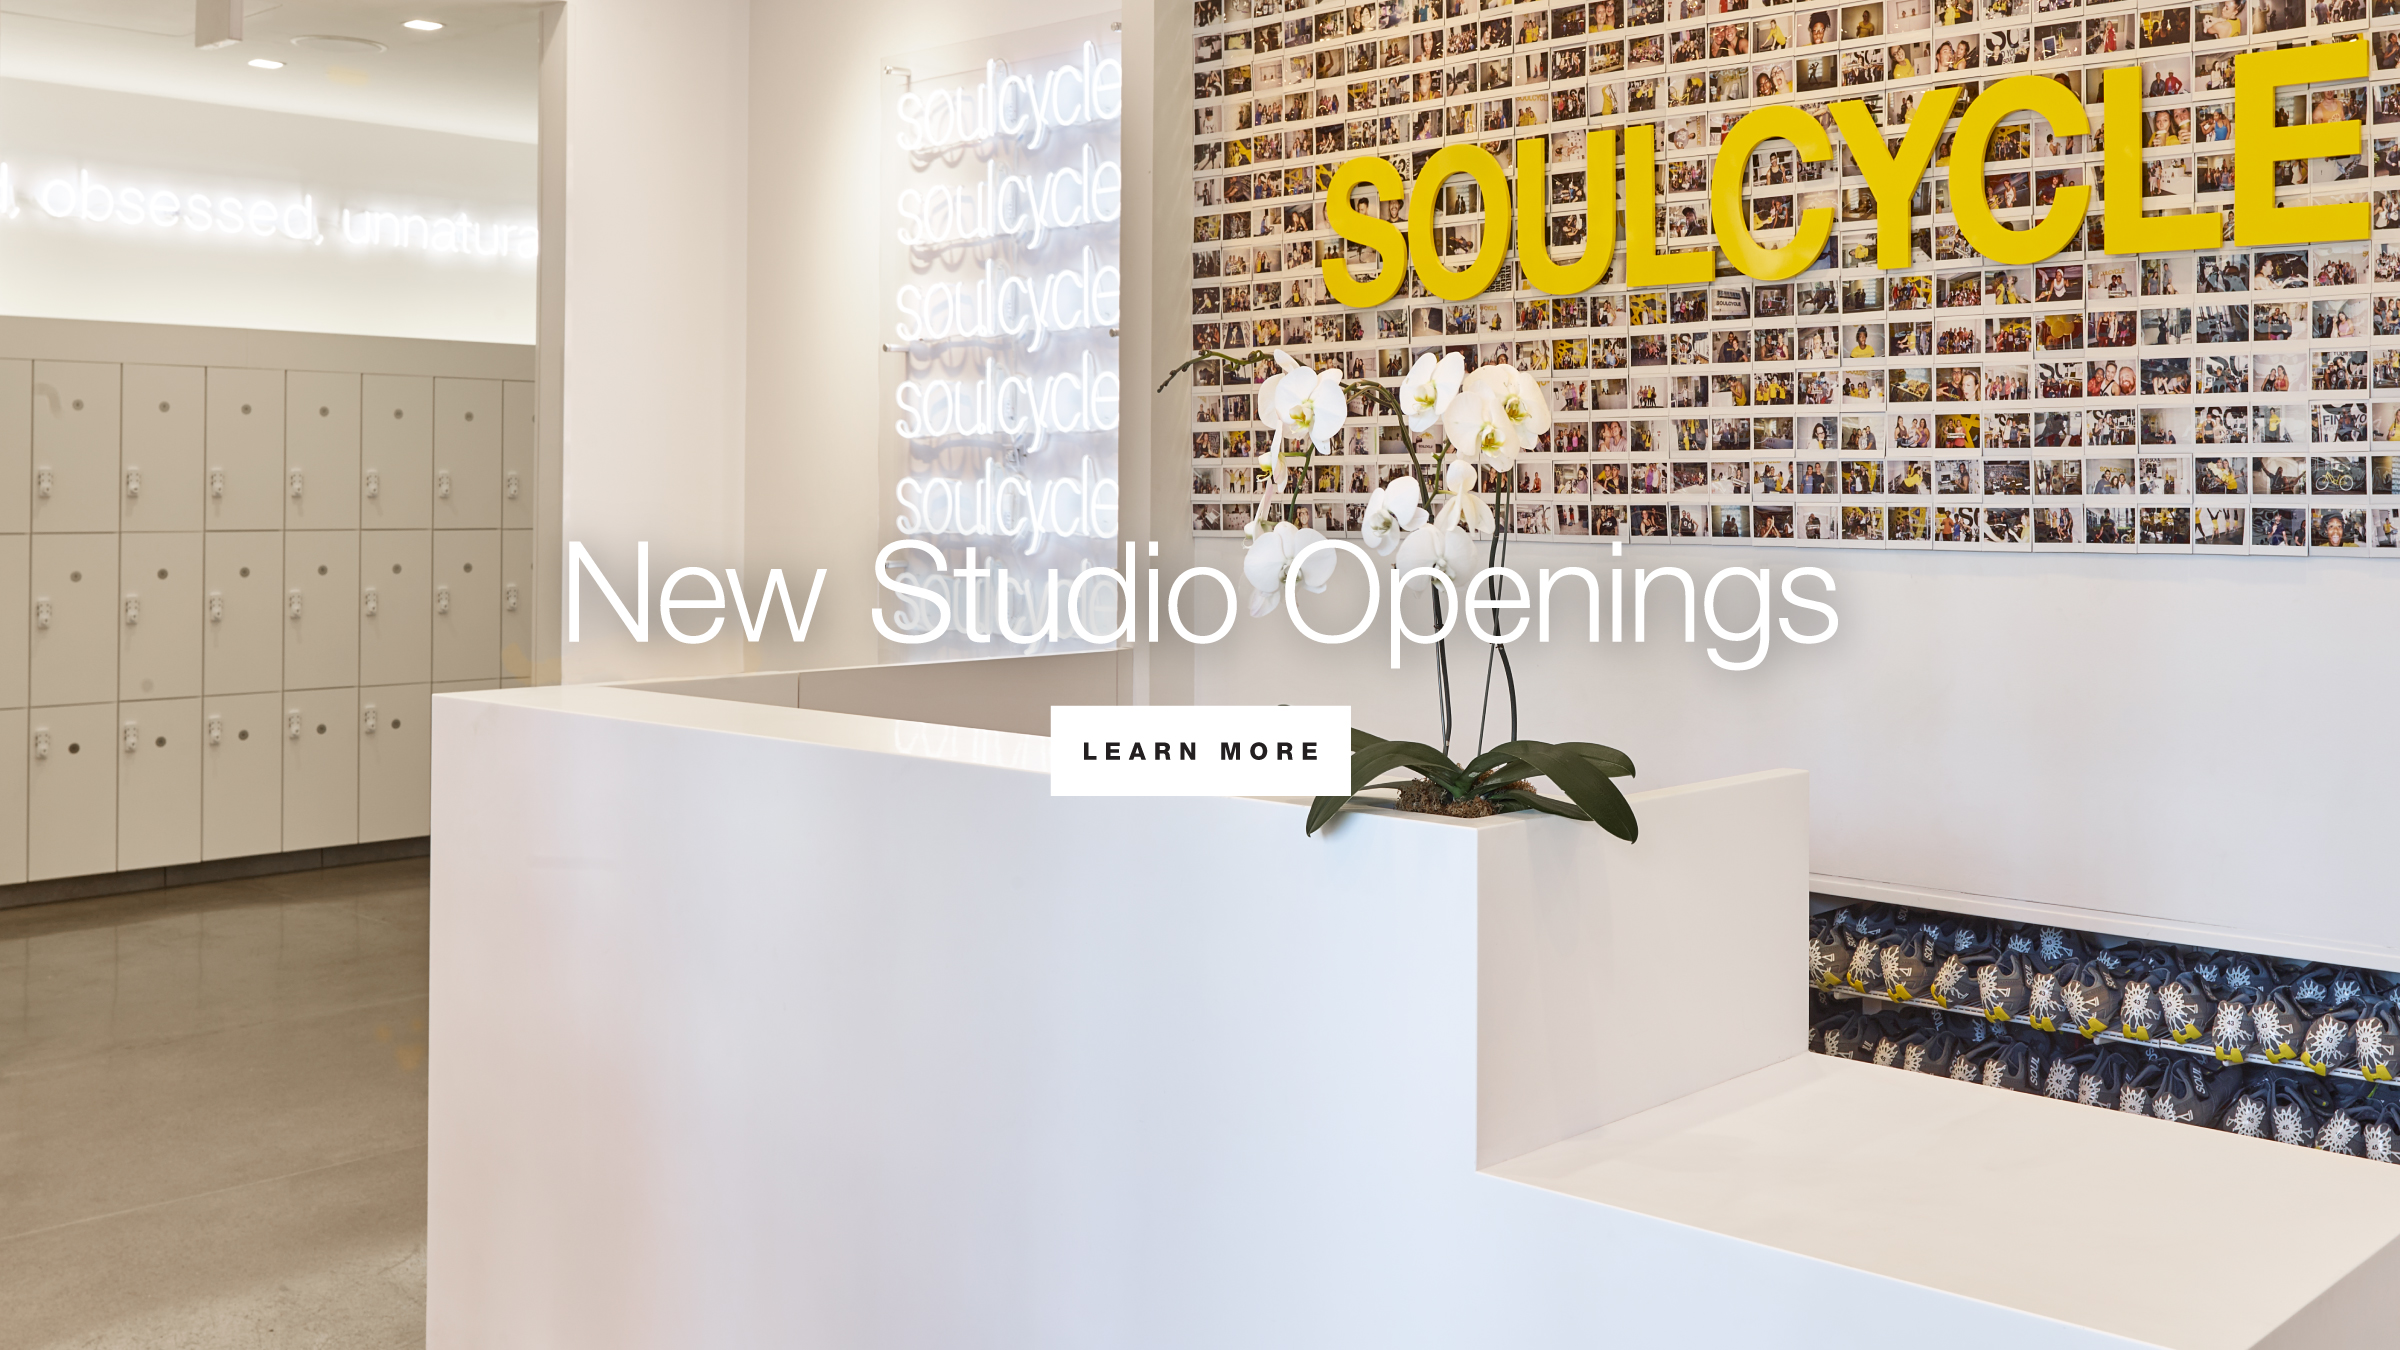 New Studio Openings